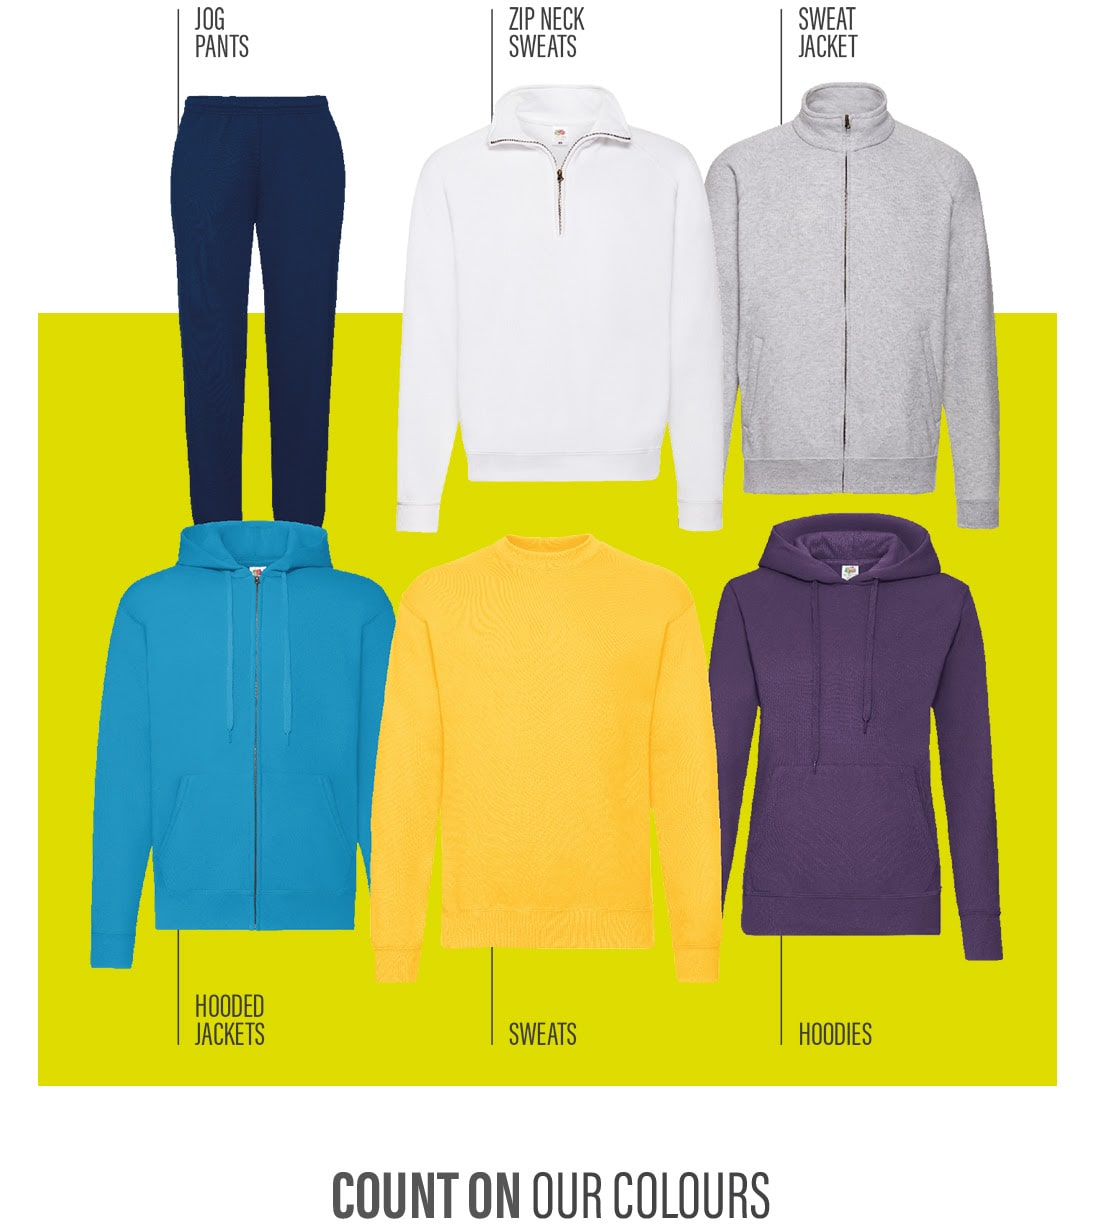 Fruit of The Loom - sudaderas chaquetas pantalones - textil Agencia Internet